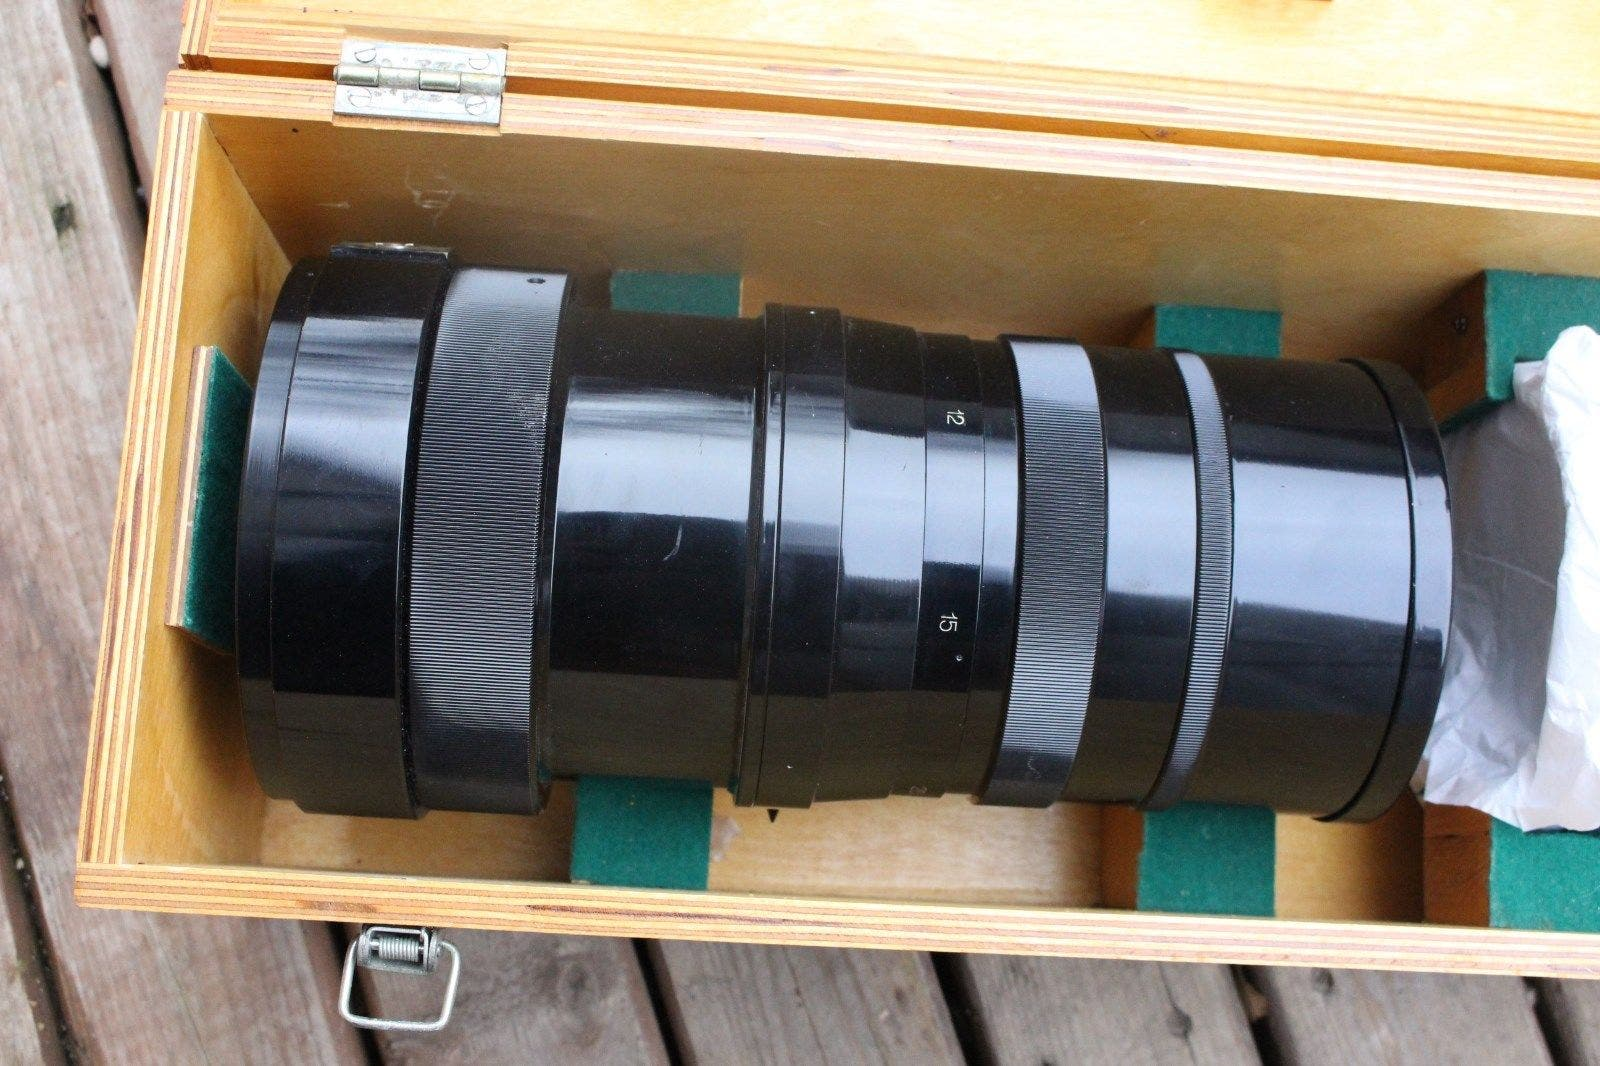 This Massive 1000mm f10 Russian Lens Has Slots for Color Filters and a Big Case